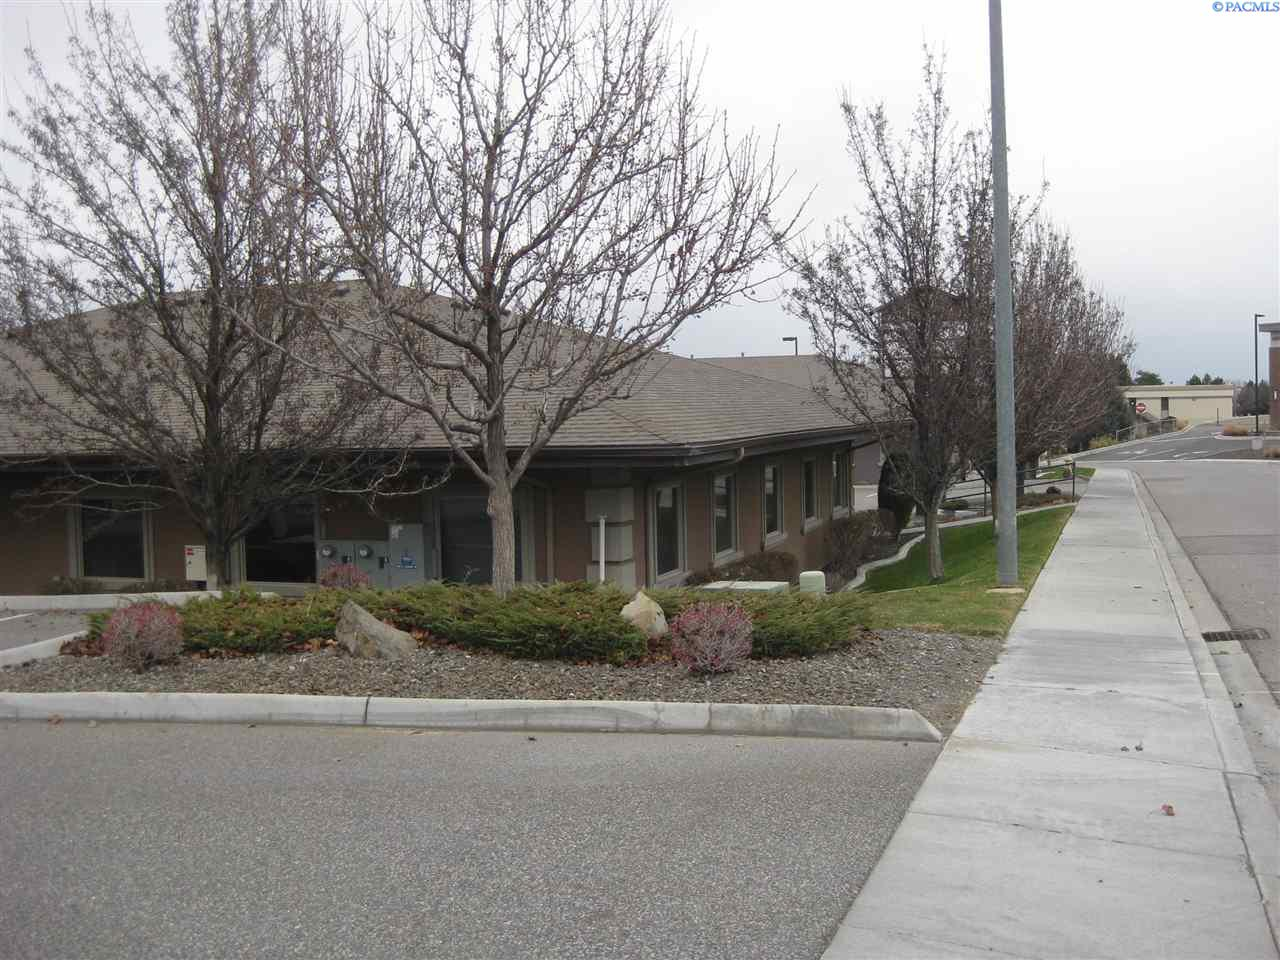 Additional photo for property listing at 8904 W Tucannon Ave 8904 W Tucannon Ave Kennewick, Washington 99336 United States